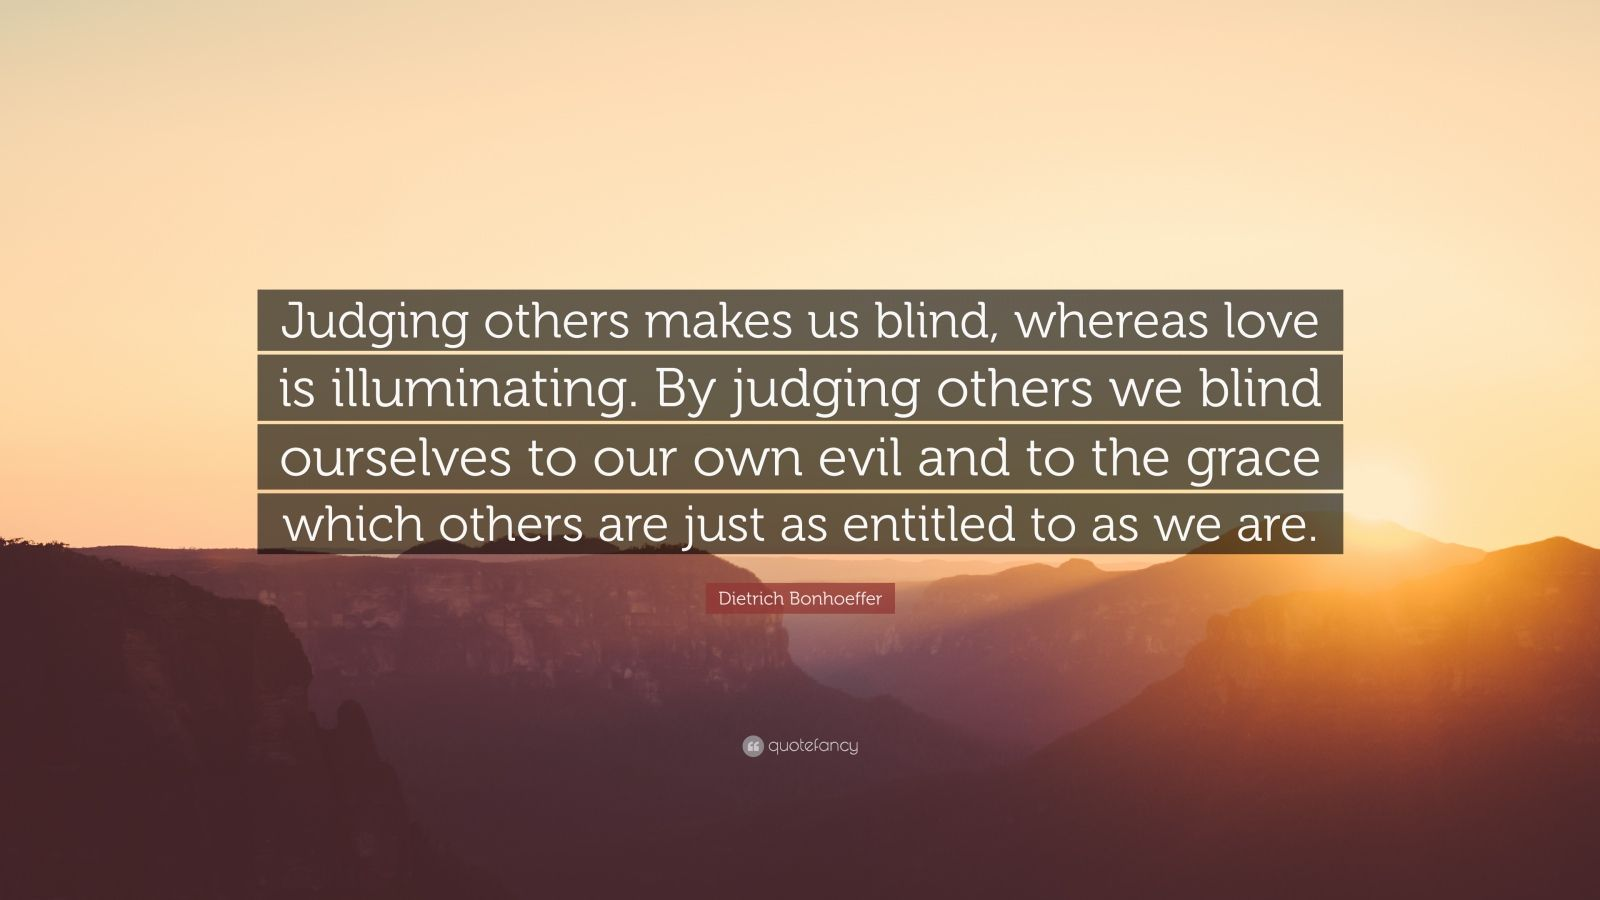 "Dietrich Bonhoeffer Quote: ""Judging others makes us blind, whereas love is illuminating. By judging others we blind ourselves to our own evil and to the grace which others are just as entitled to as we are."""